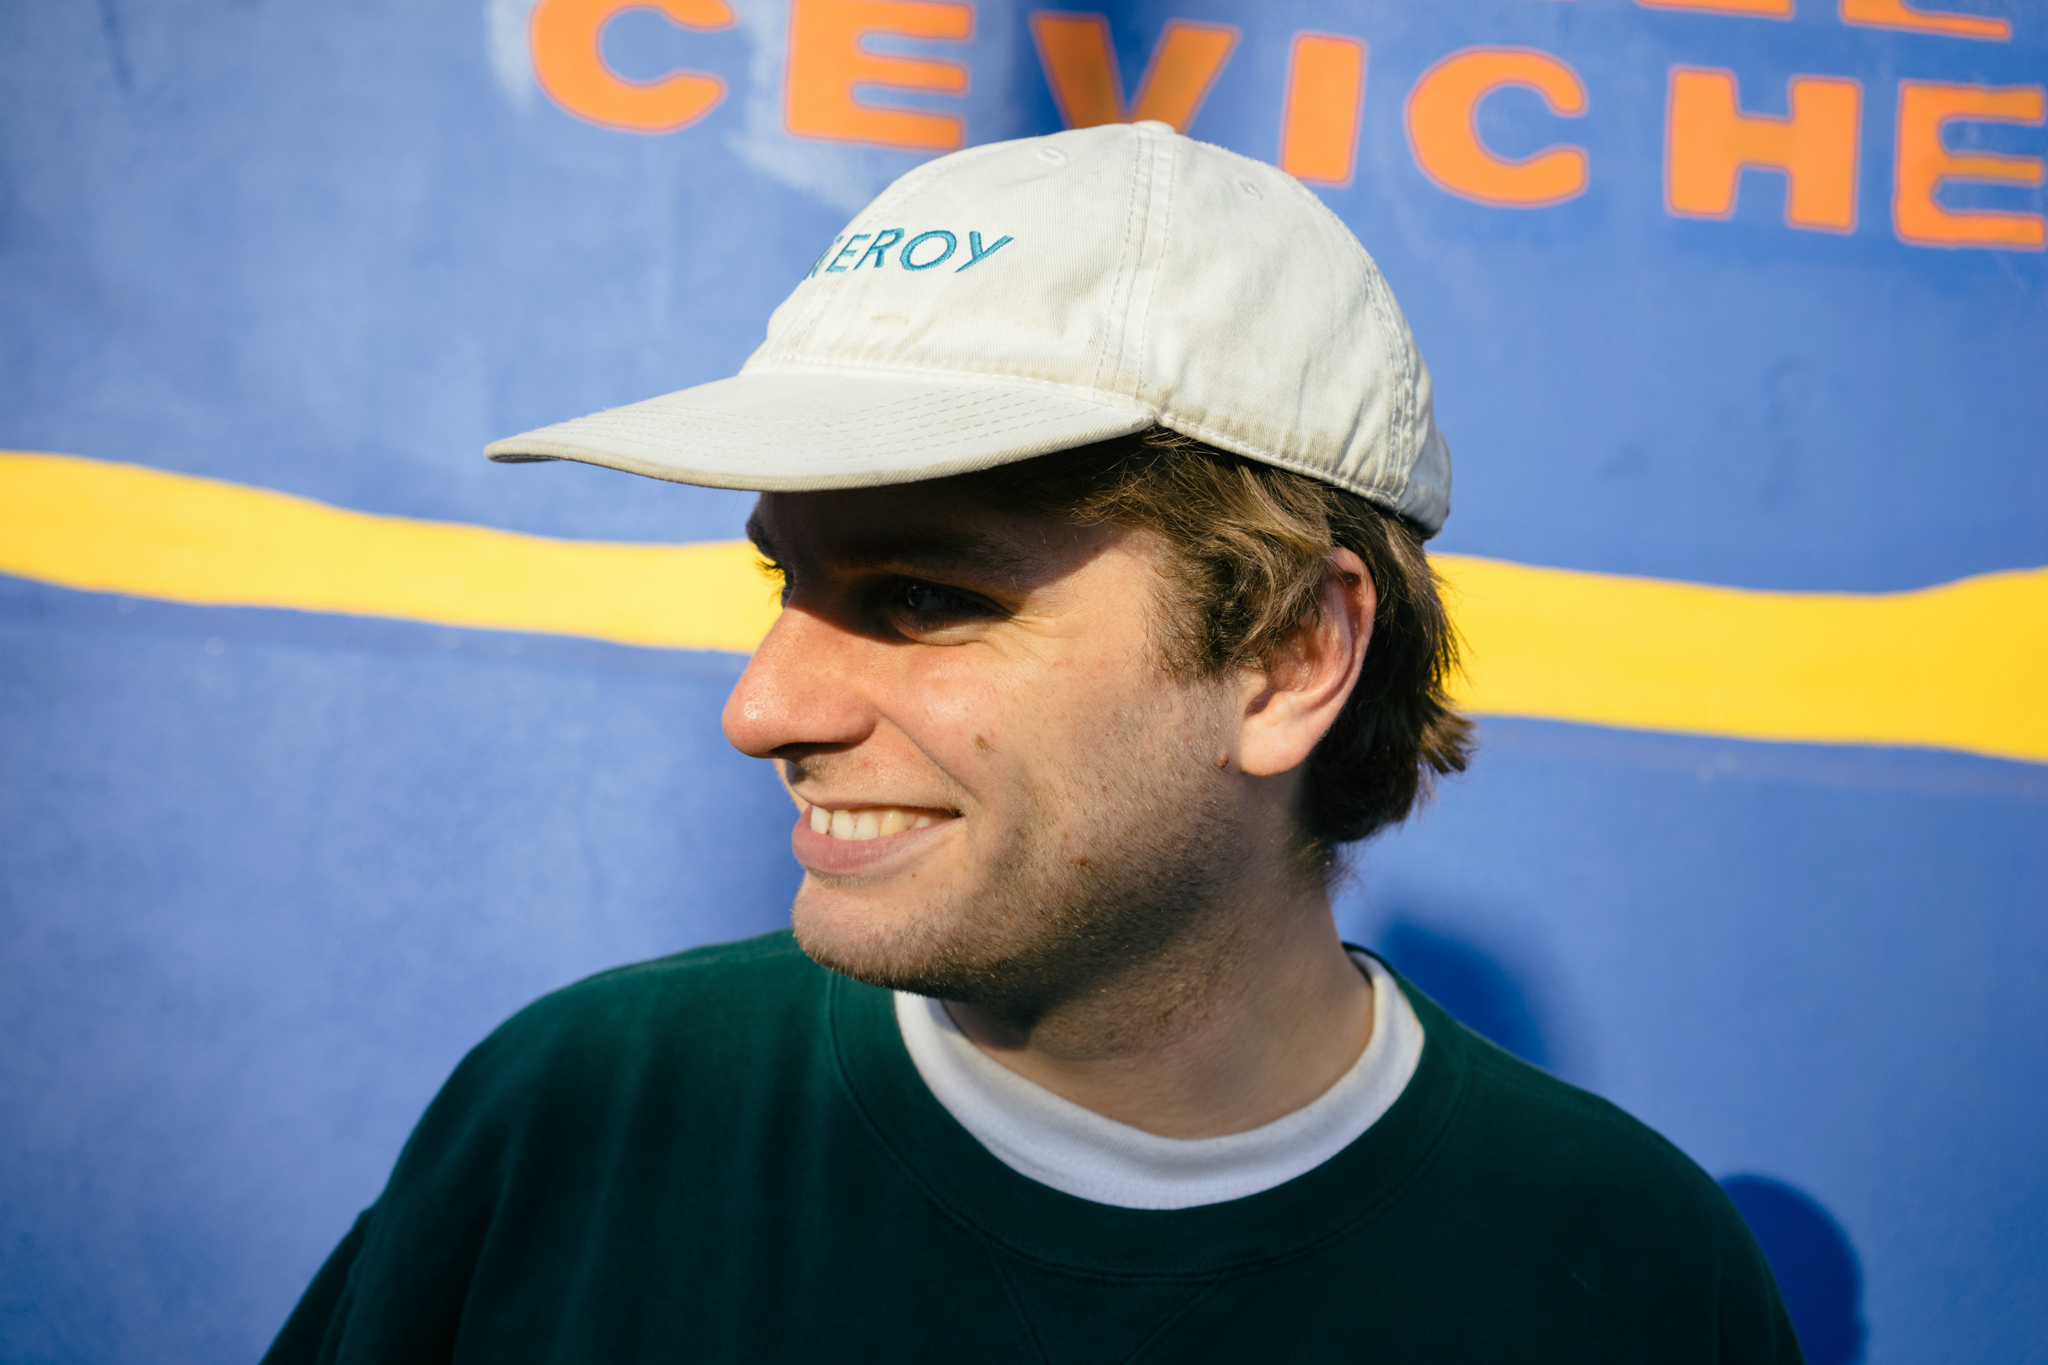 Return of the Mac: Mac DeMarco is back in the UK